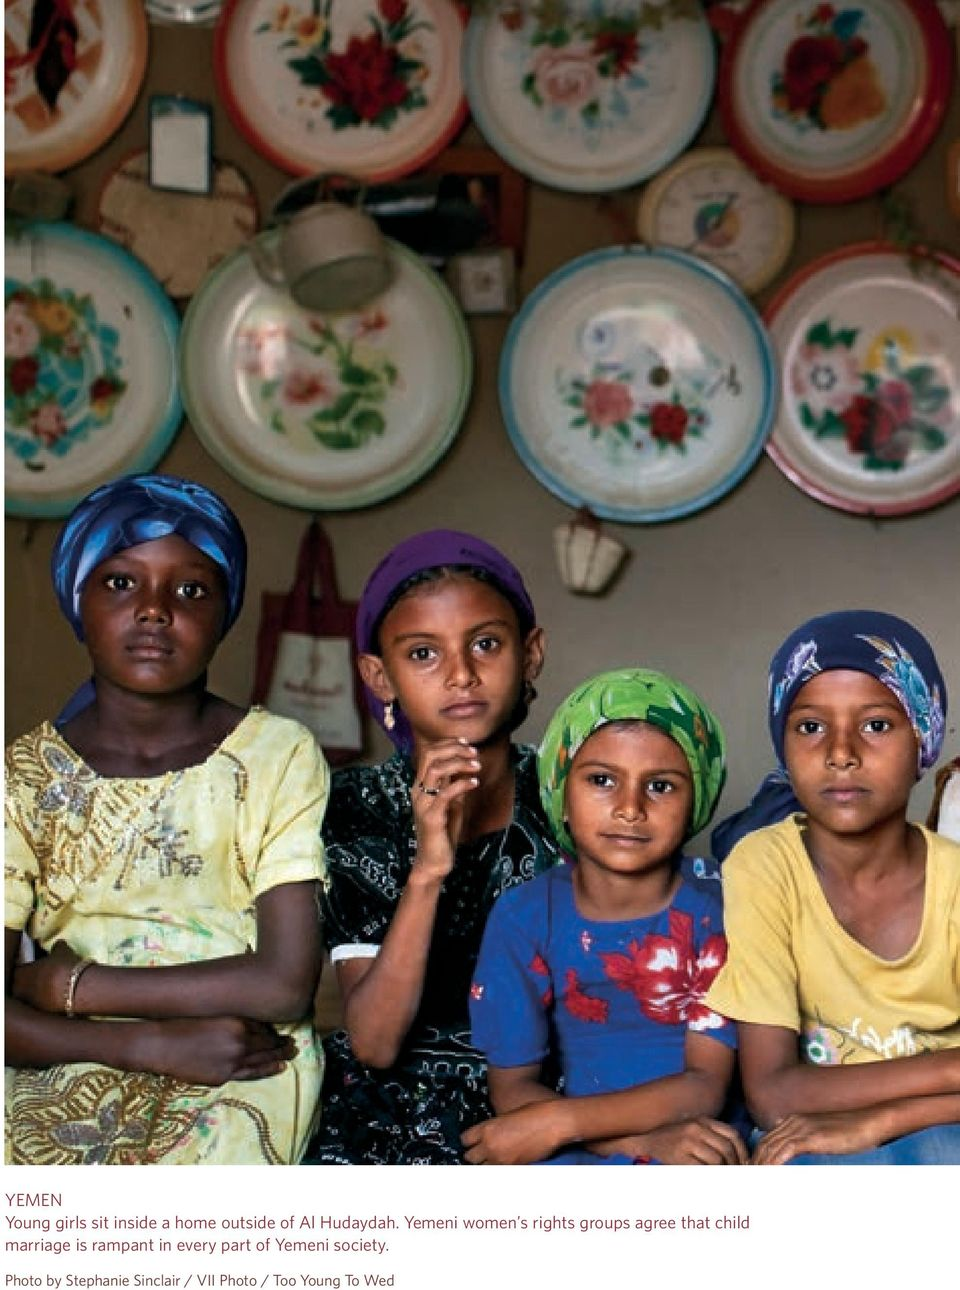 Yemeni women s rights groups agree that child marriage